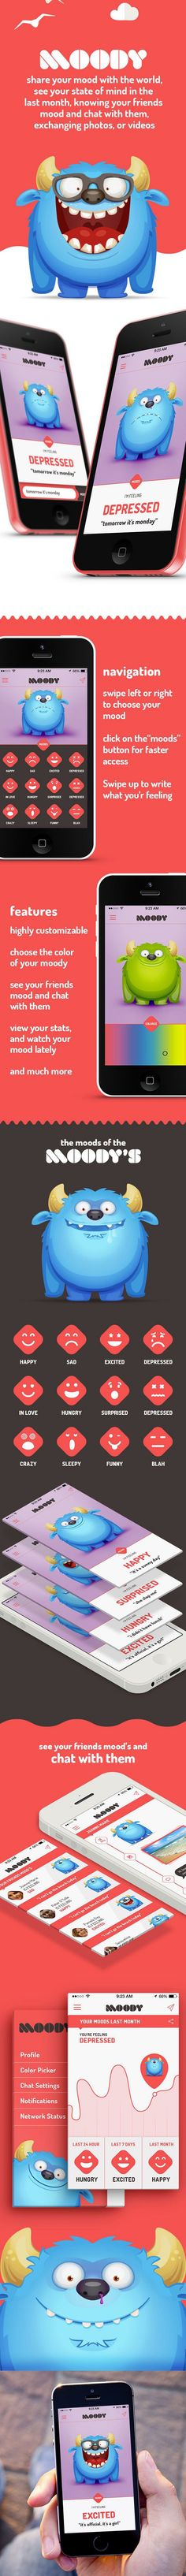 Moody App Published by John Stone